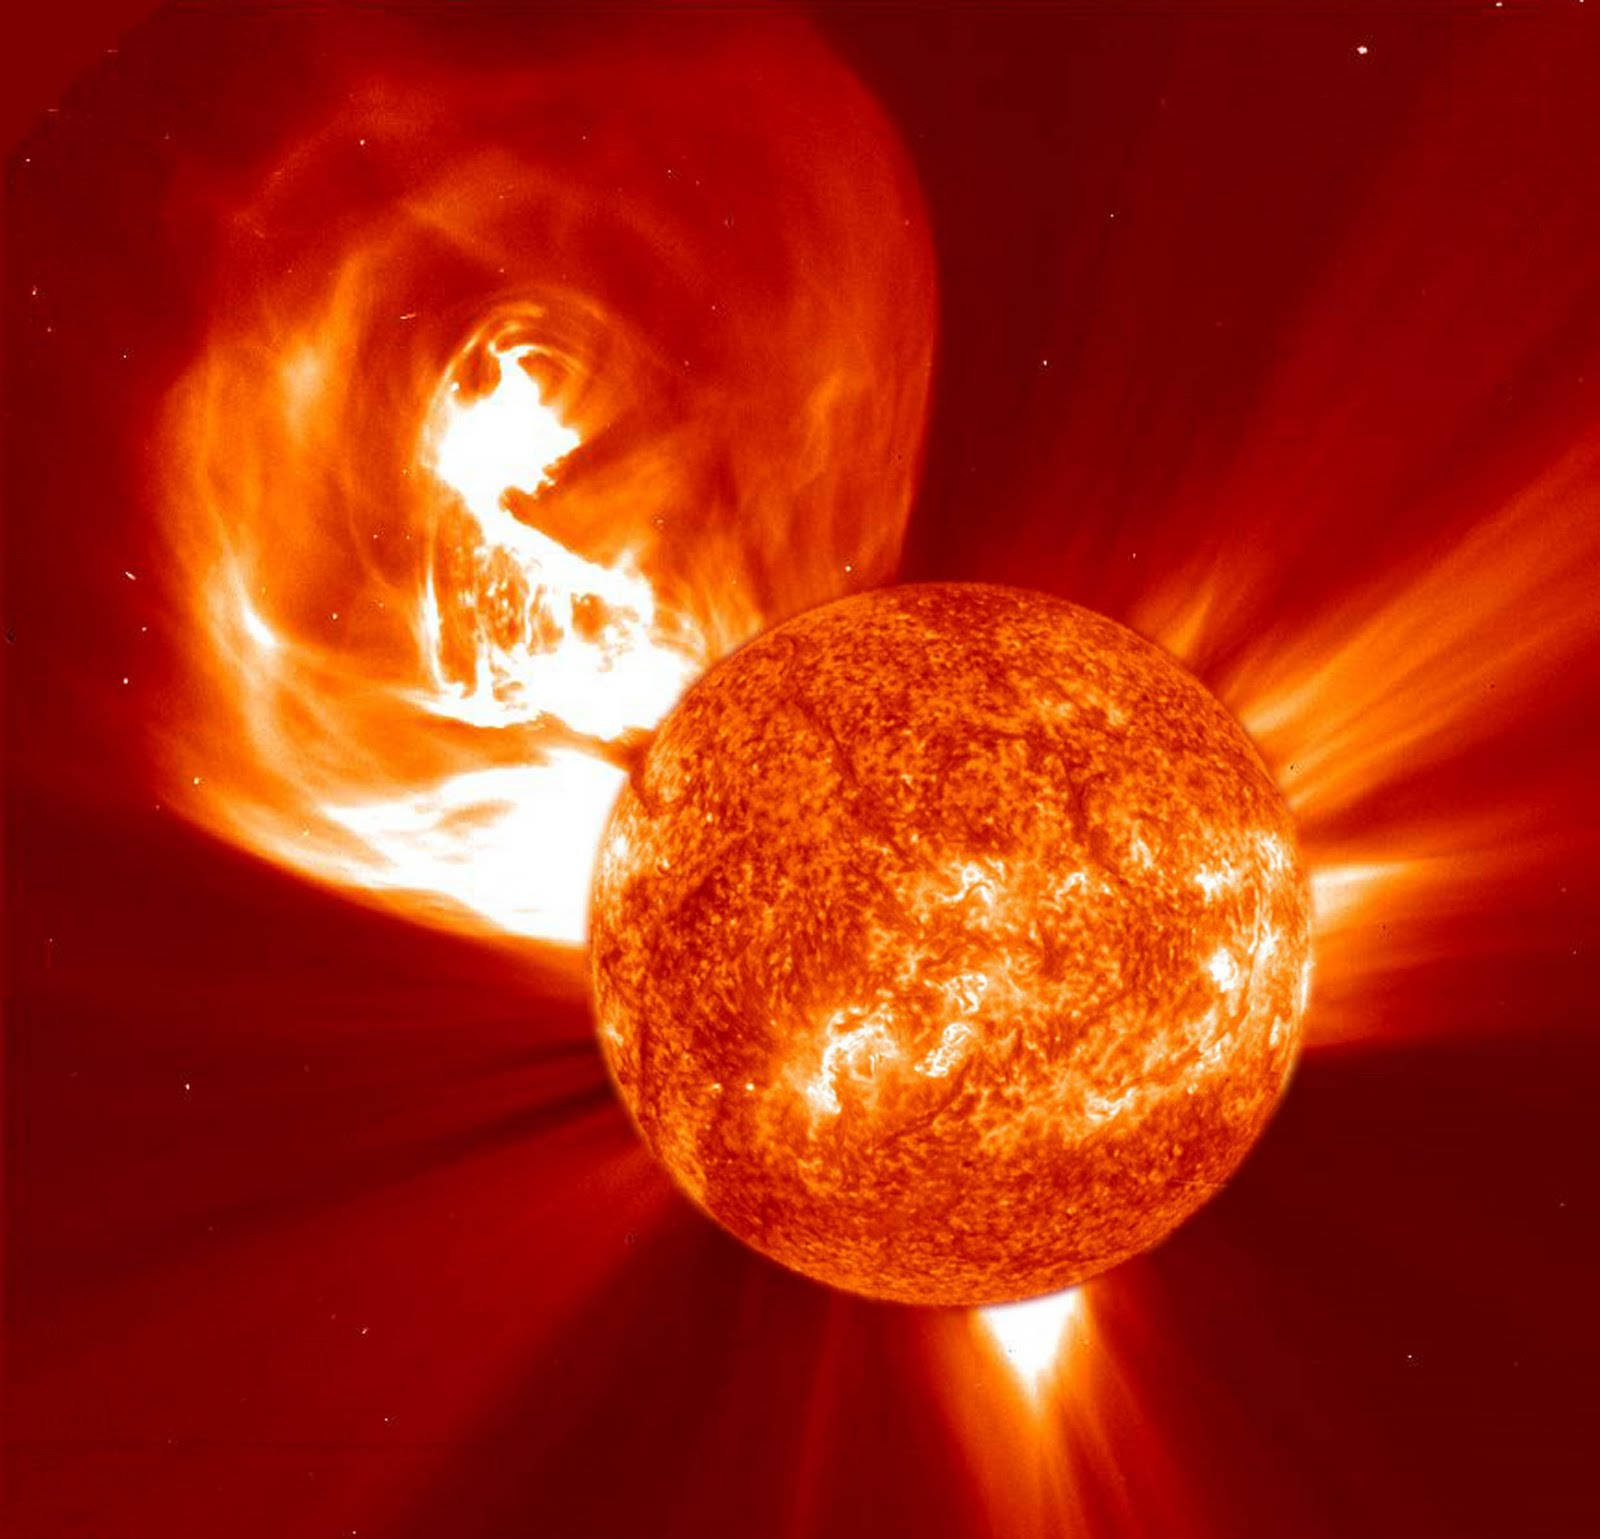 NASA UPGRADES 2012 SOLAR STORM WARNING - THE REAL SIGNS OF ...